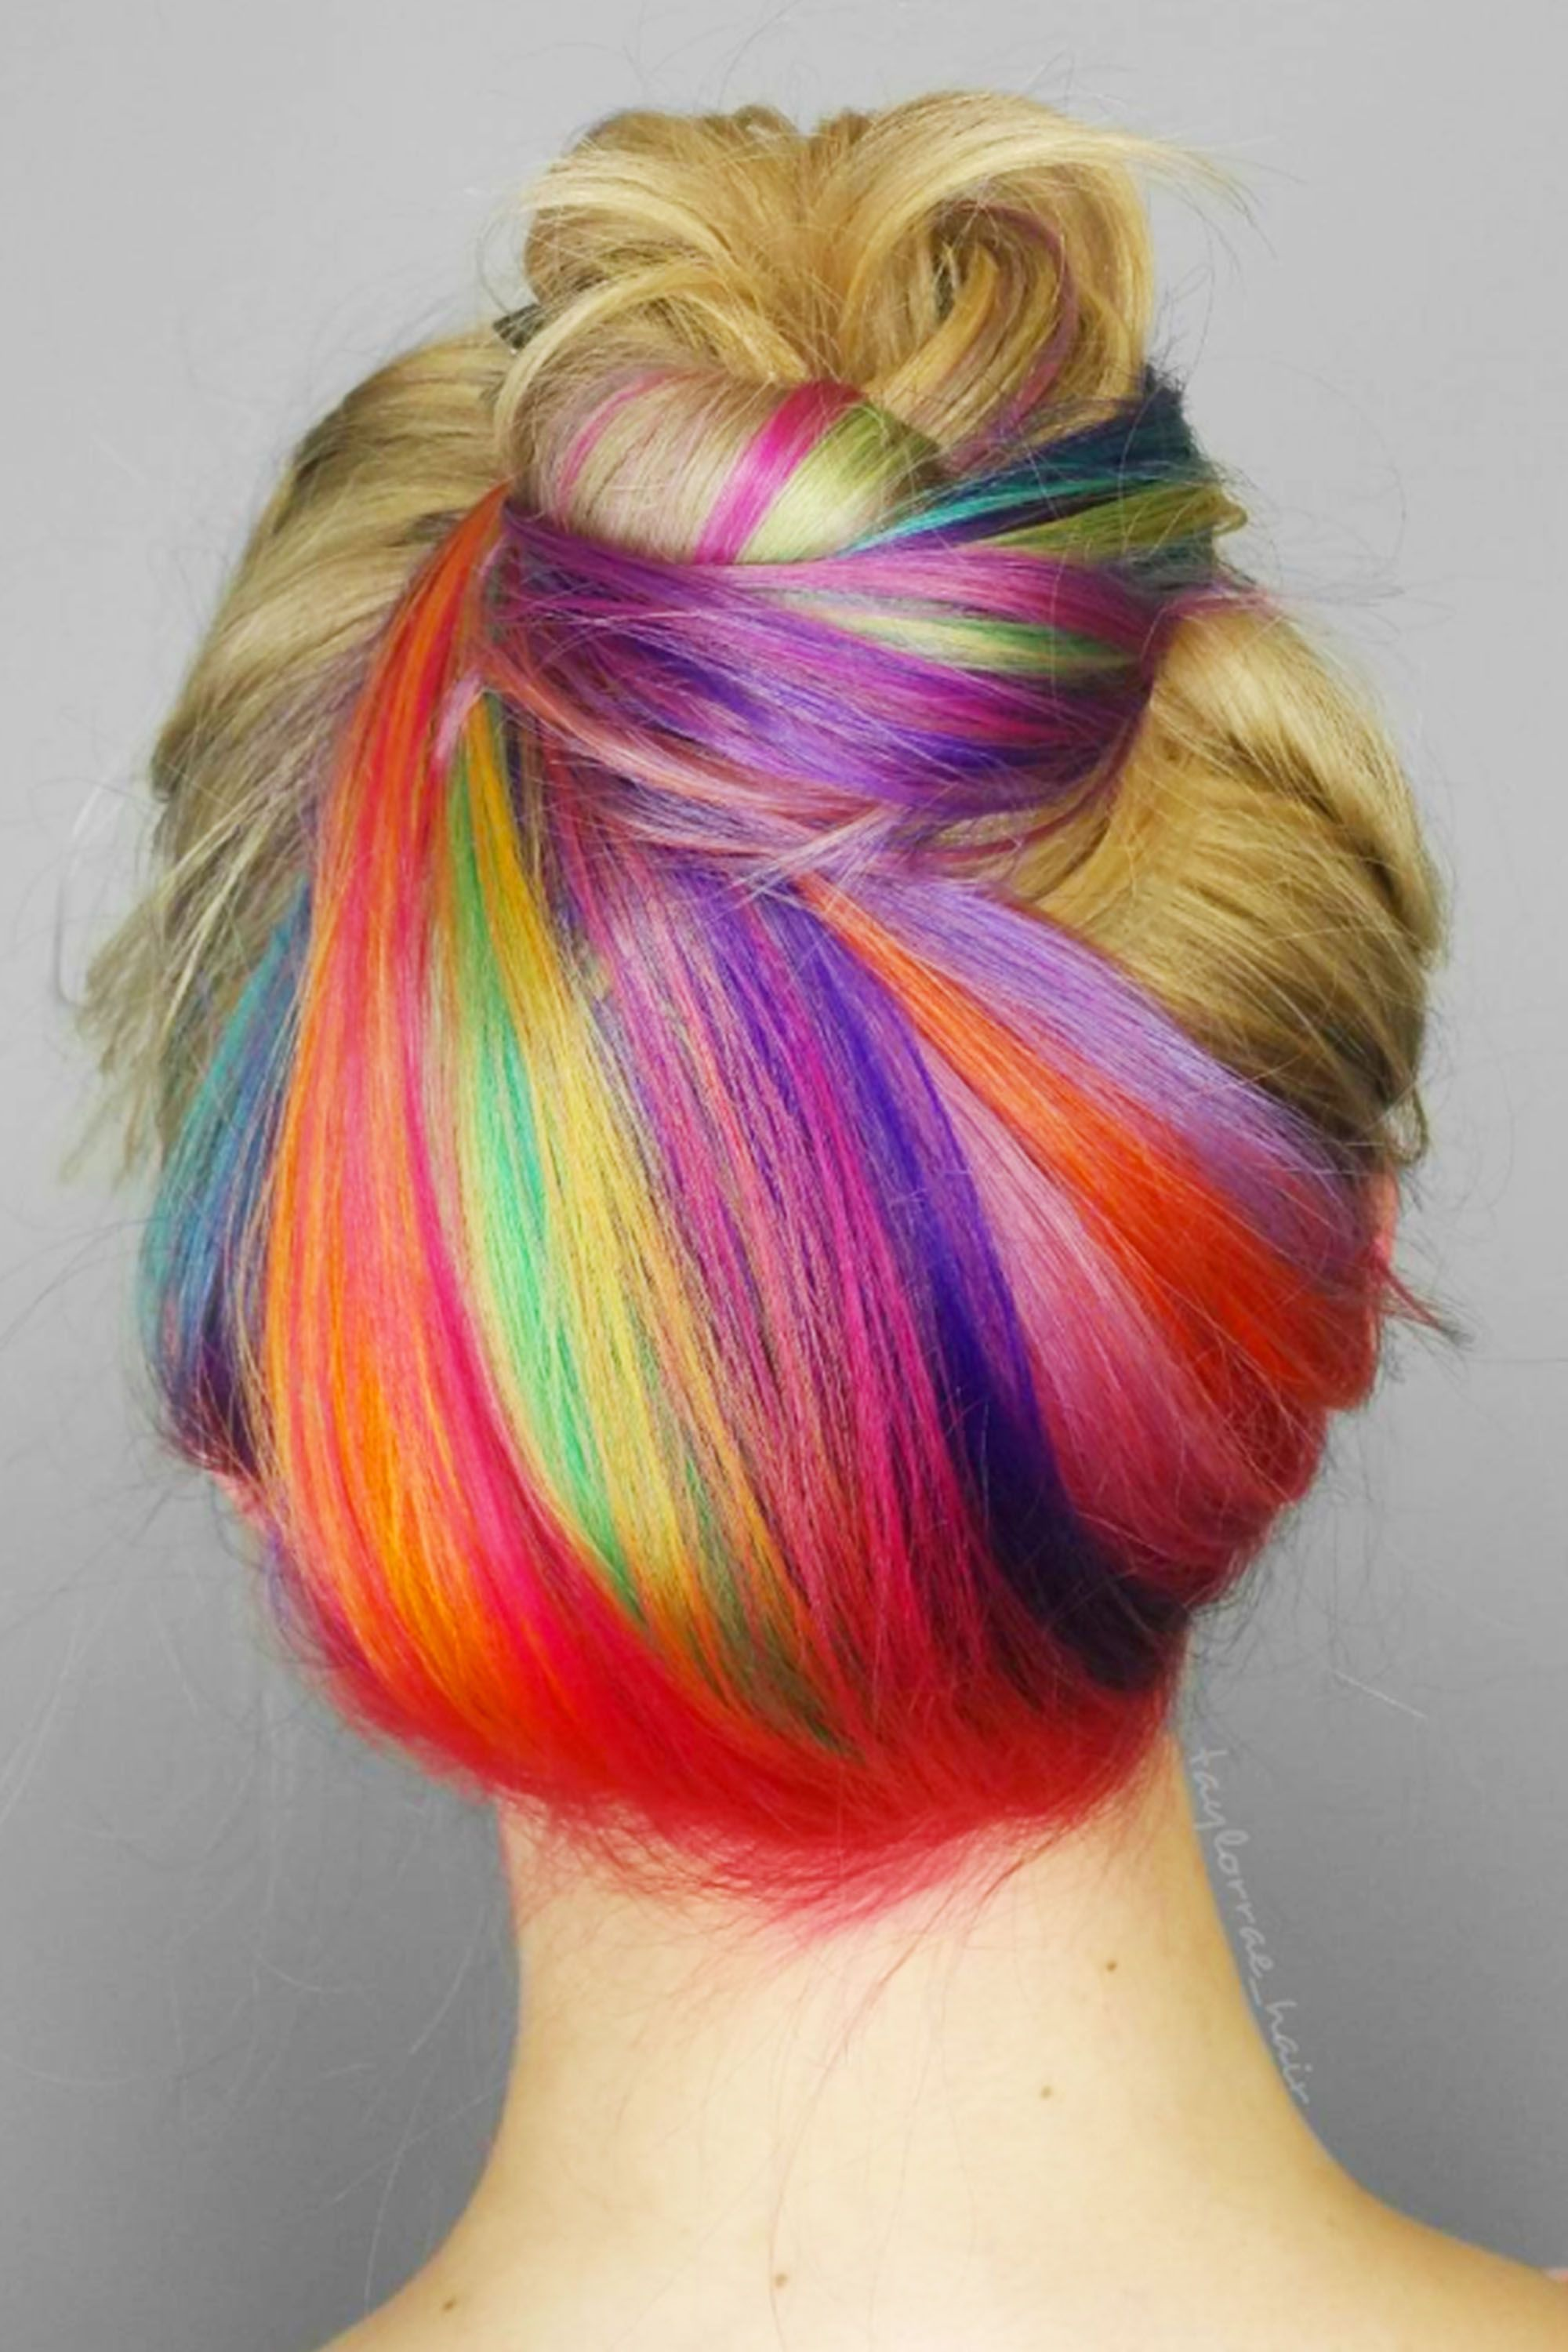 <p>And under-dye in tie-dye brights. </p>